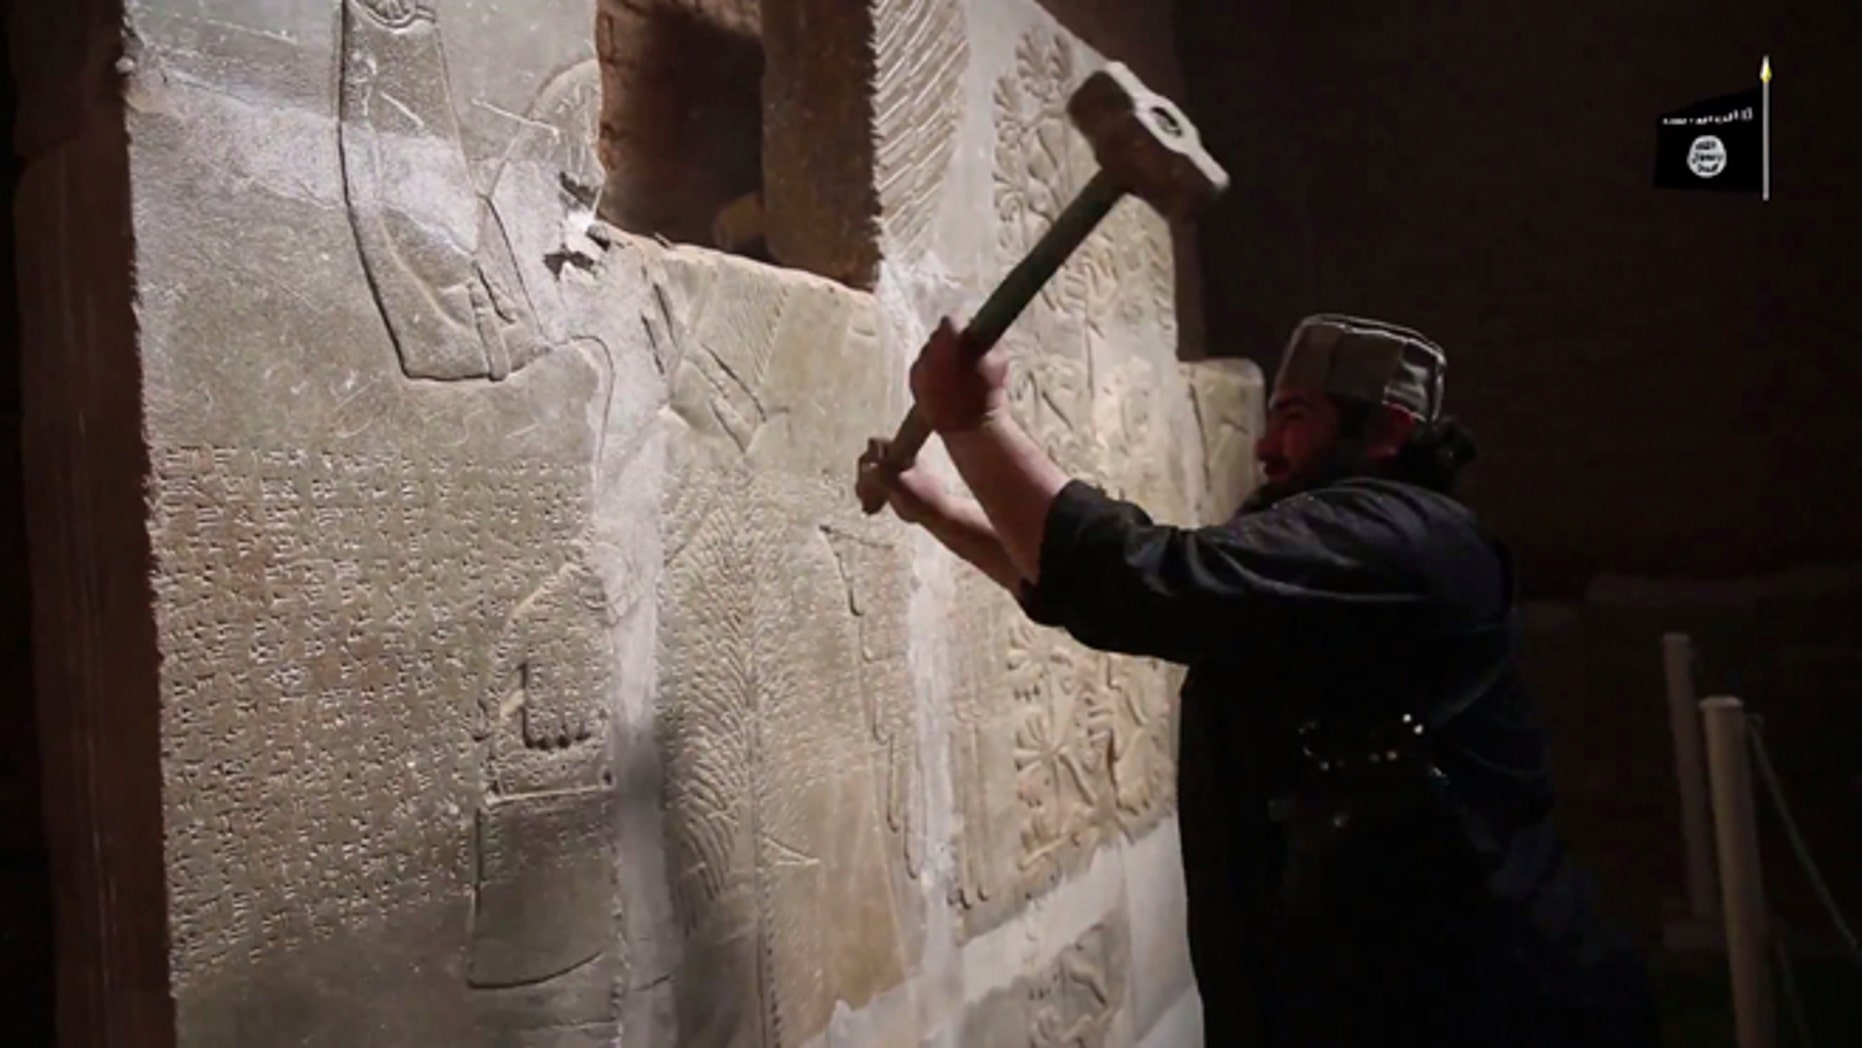 "April 11, 2015: In this image made from video posted on a militant social media account affiliated with the Islamic State group purports to show a militant taking a sledgehammer to an Assyrian relief at the site of the ancient Assyrian city of Nimrud, which dates back to the 13th century B.C., near the militant-held city of Mosul, Iraq. The destruction at Nimrud, follows other attacks on antiquity carried out by the group now holding a third of Iraq and neighboring Syria in its self-declared caliphate. The attacks have horrified archaeologists and U.N. Secretary-General Ban Ki-moon, who last month called the destruction at Nimrud ""a war crime."""